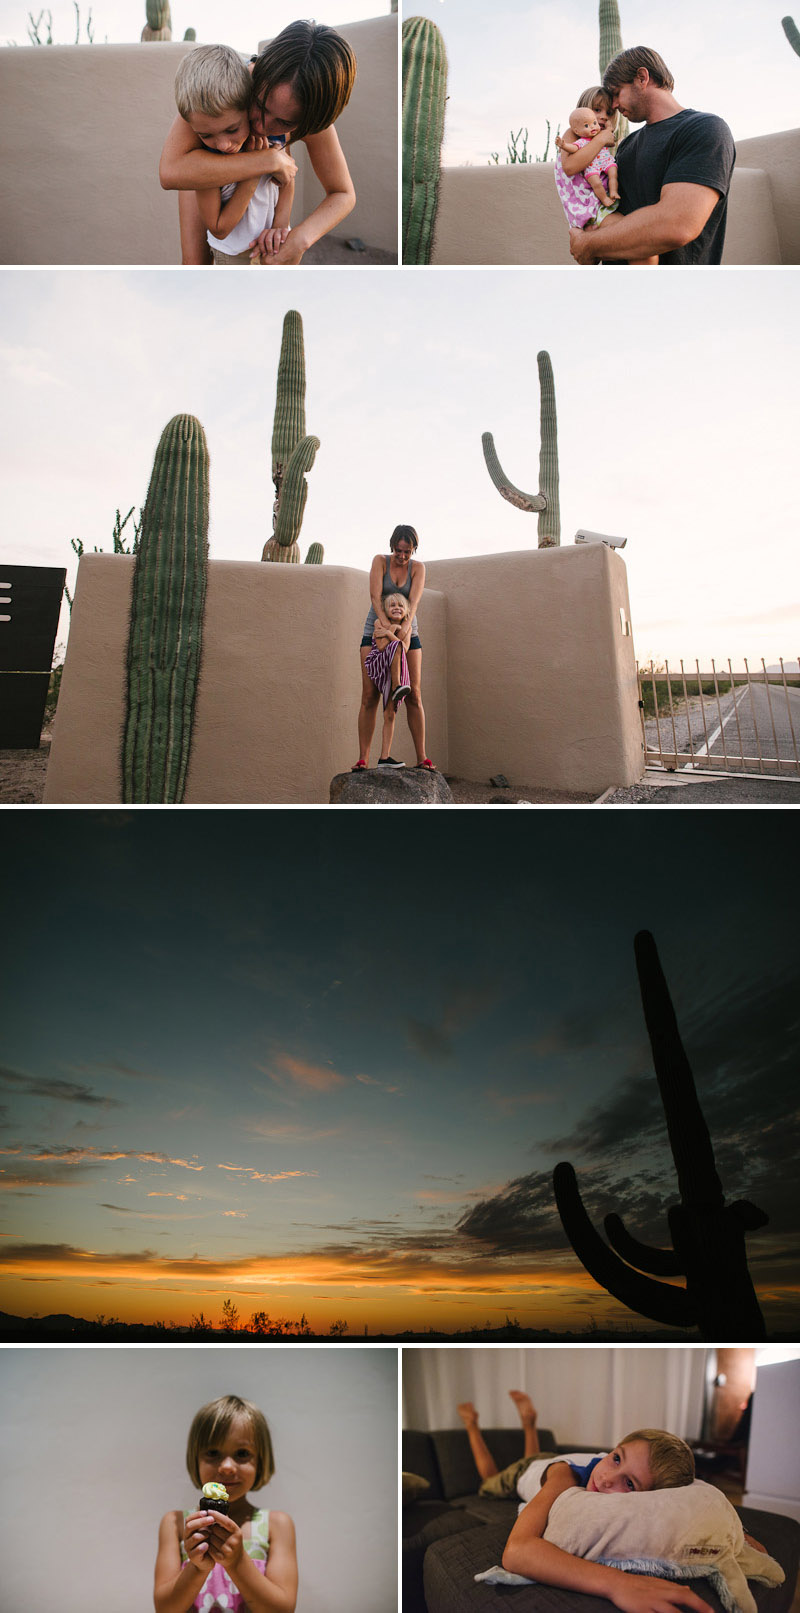 kids with cactuses in the desert